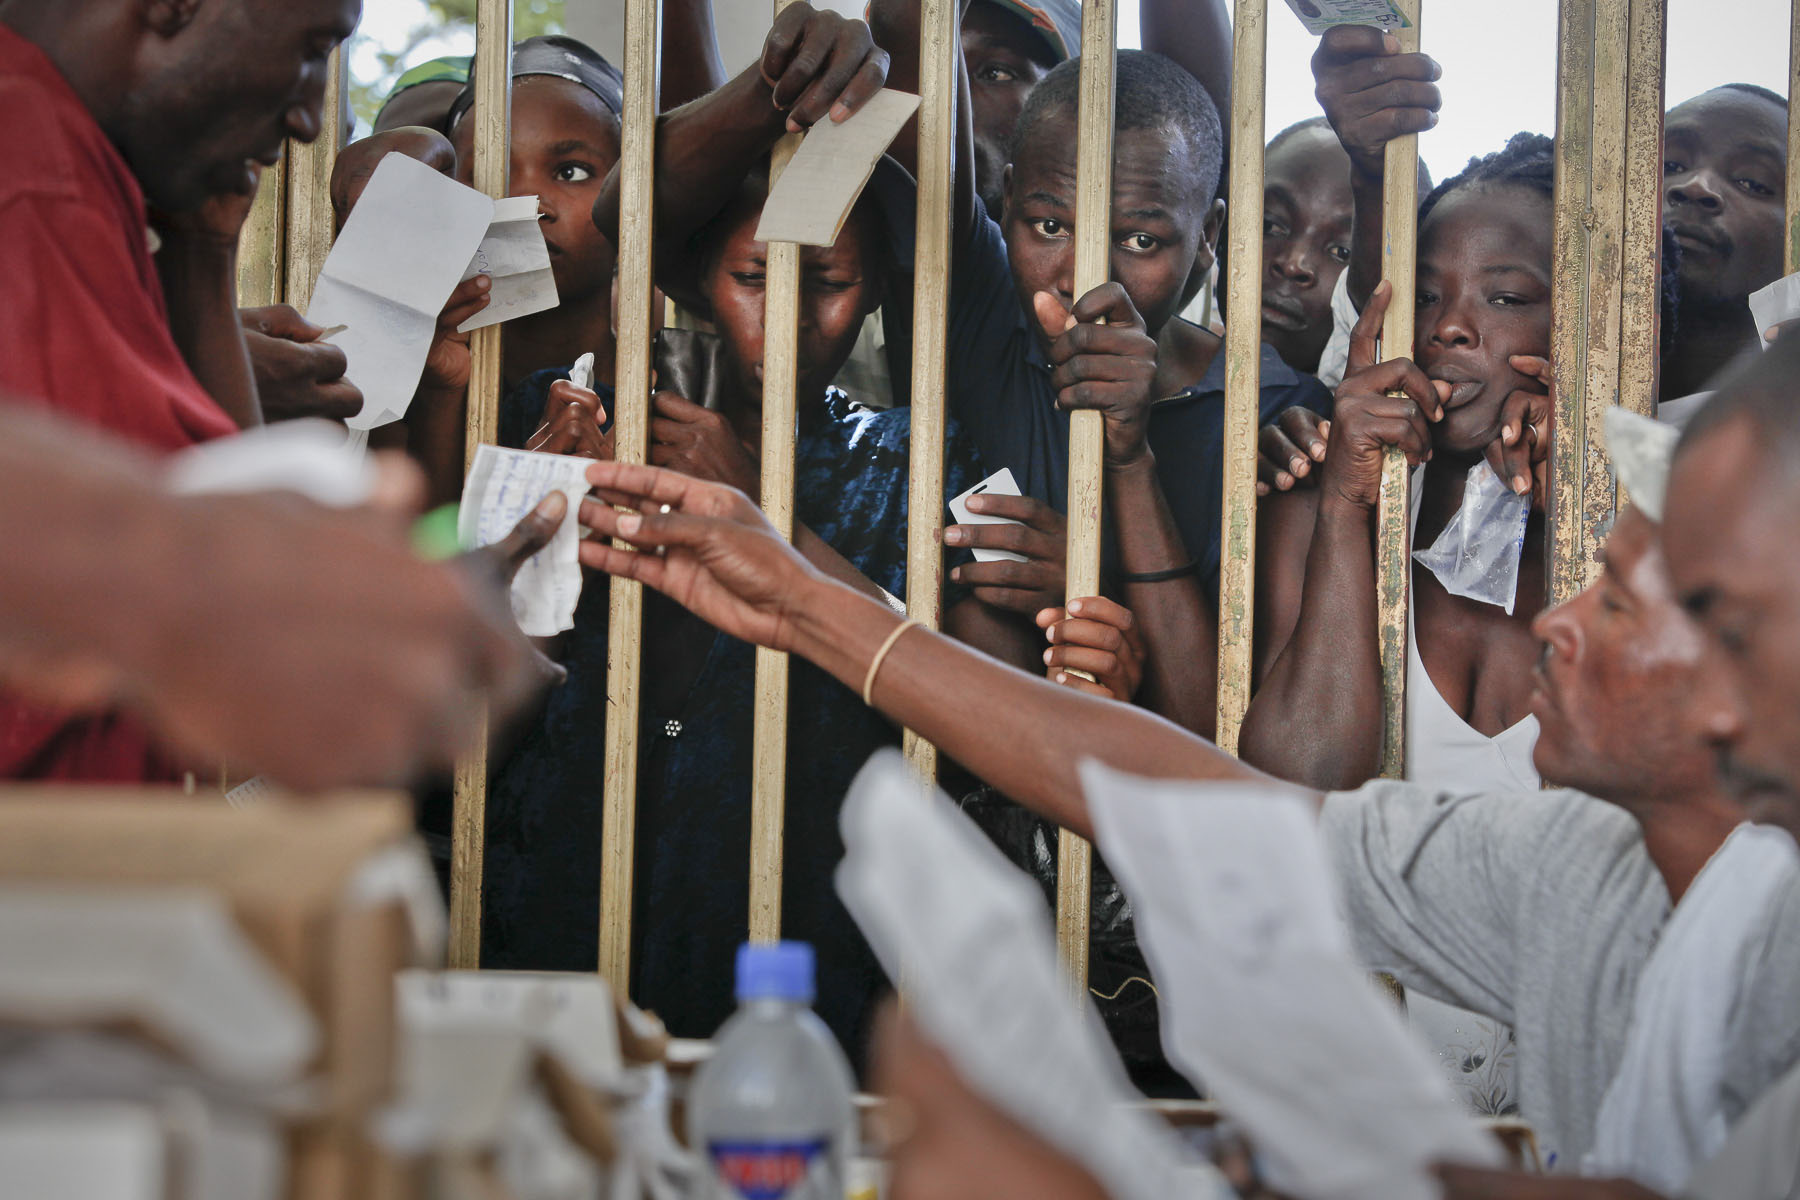 Haiti, Gonaïves. Distribution of voting cards two days before presidential elections on Friday, November 26, 2010